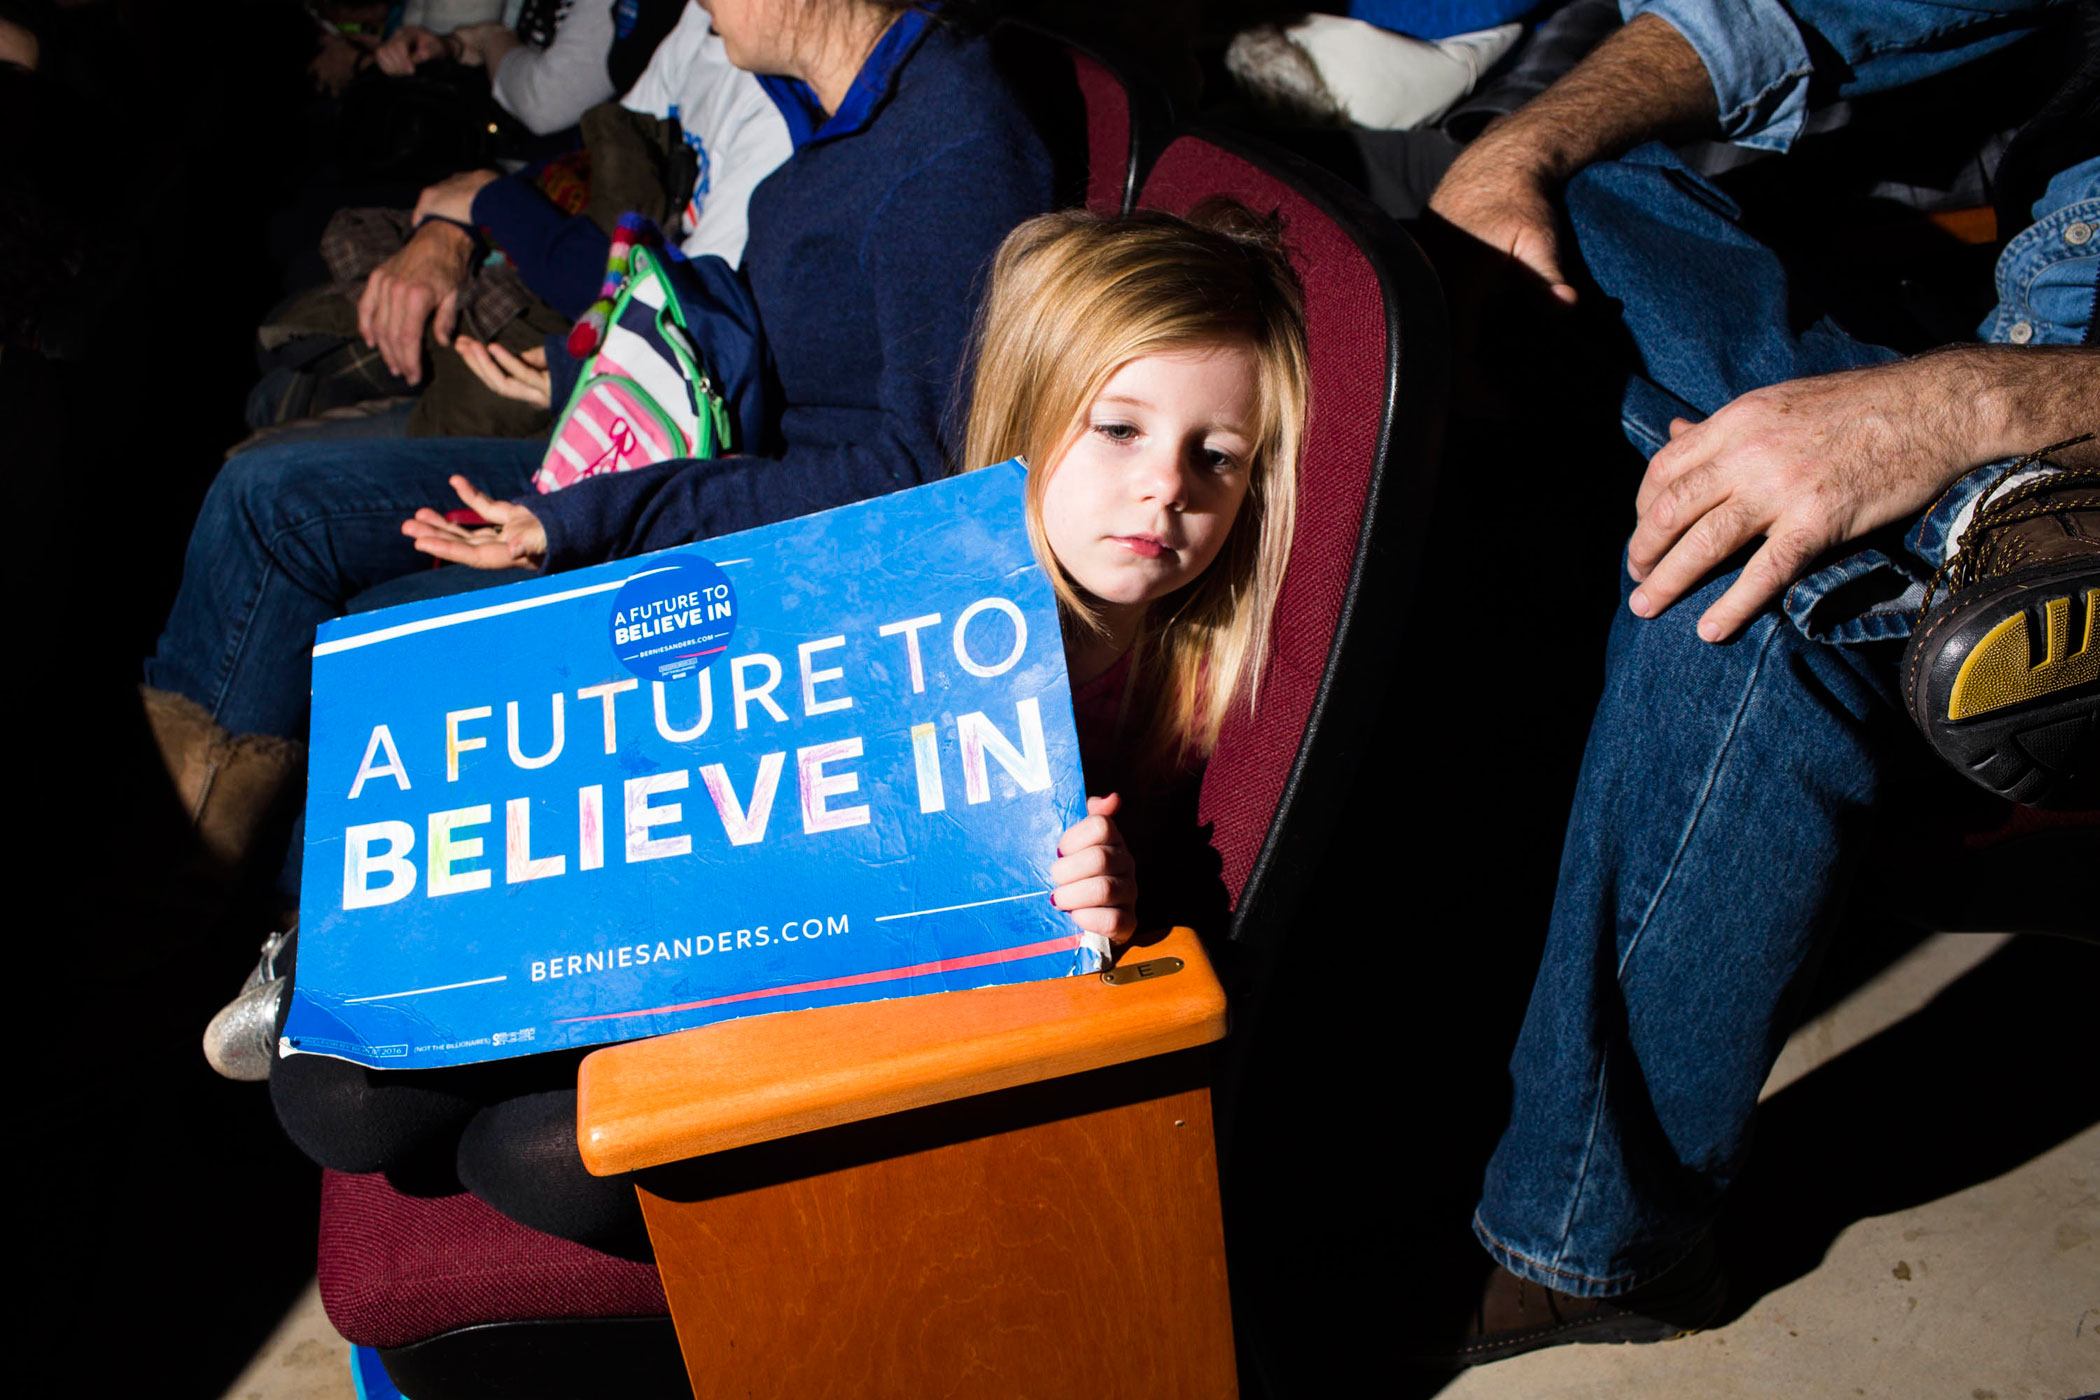 Supporters of Vermont Sen. Bernie Sanders attend a campaign event at Pinkerton Academy on M Feb. 8, 2016, in Derry, N.H.